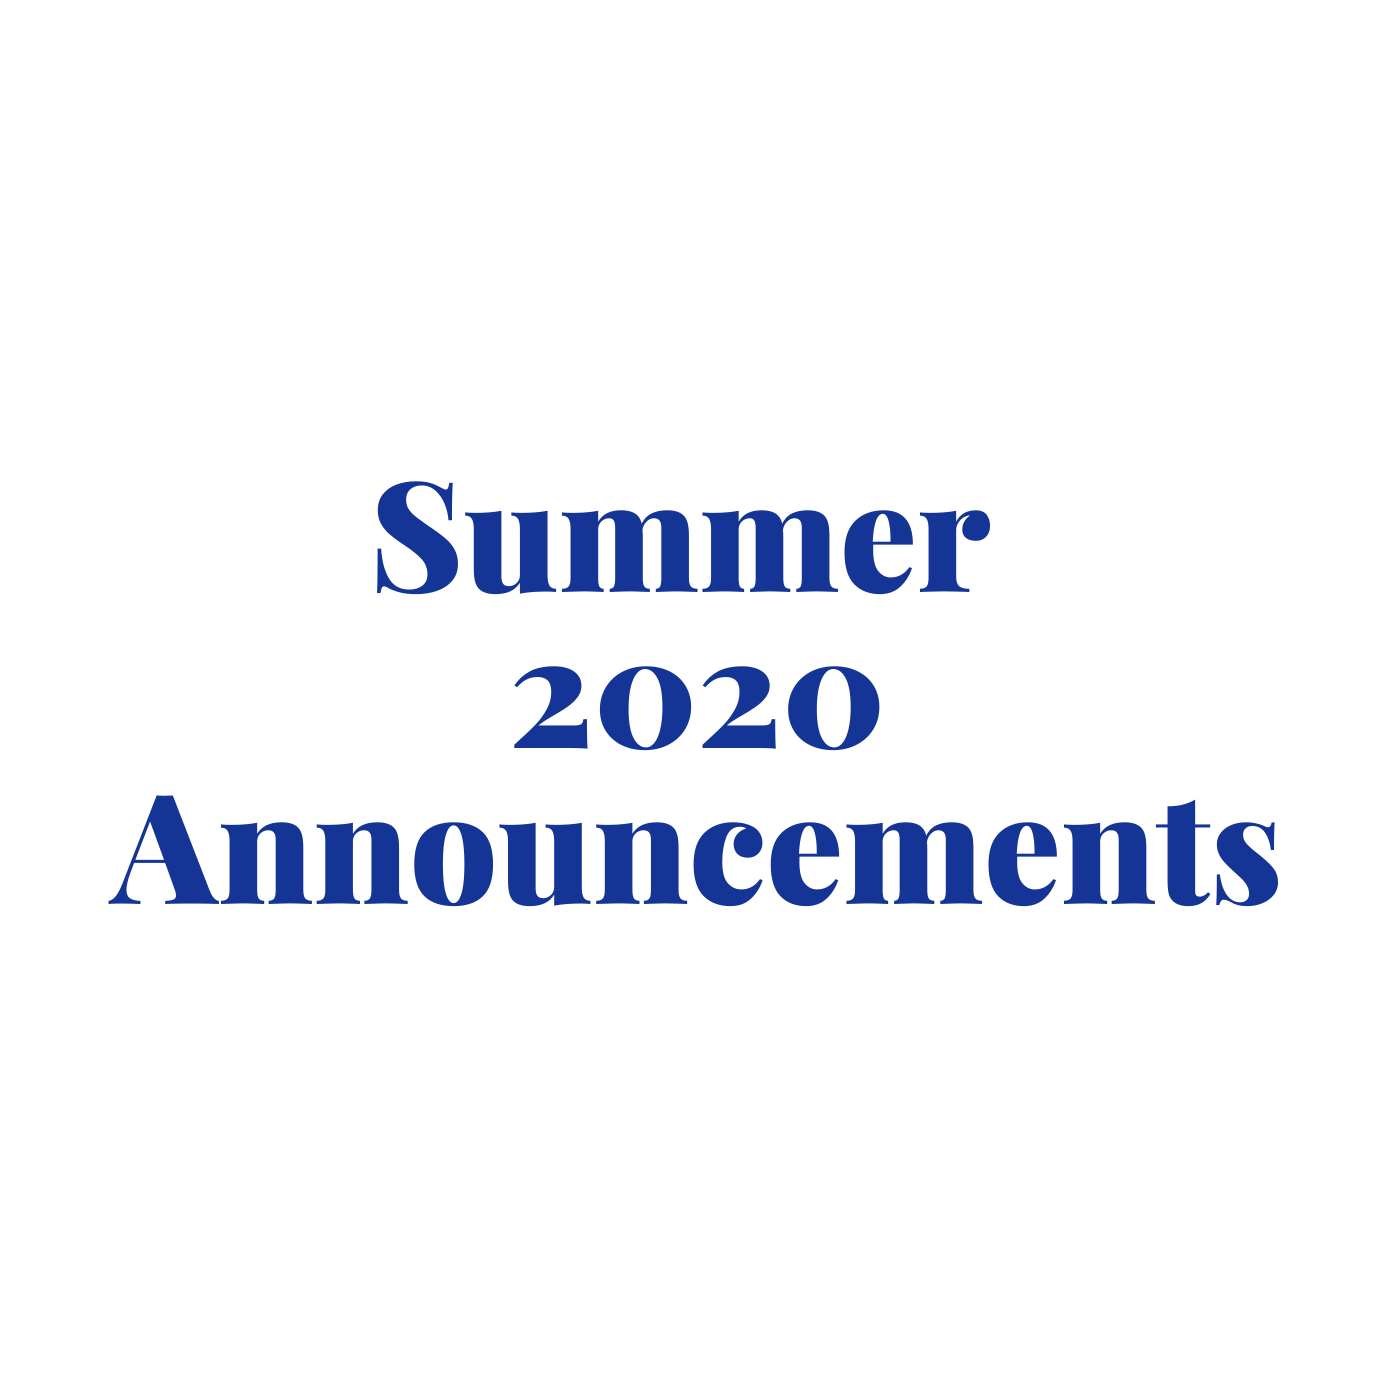 Summer 2020 Announcements